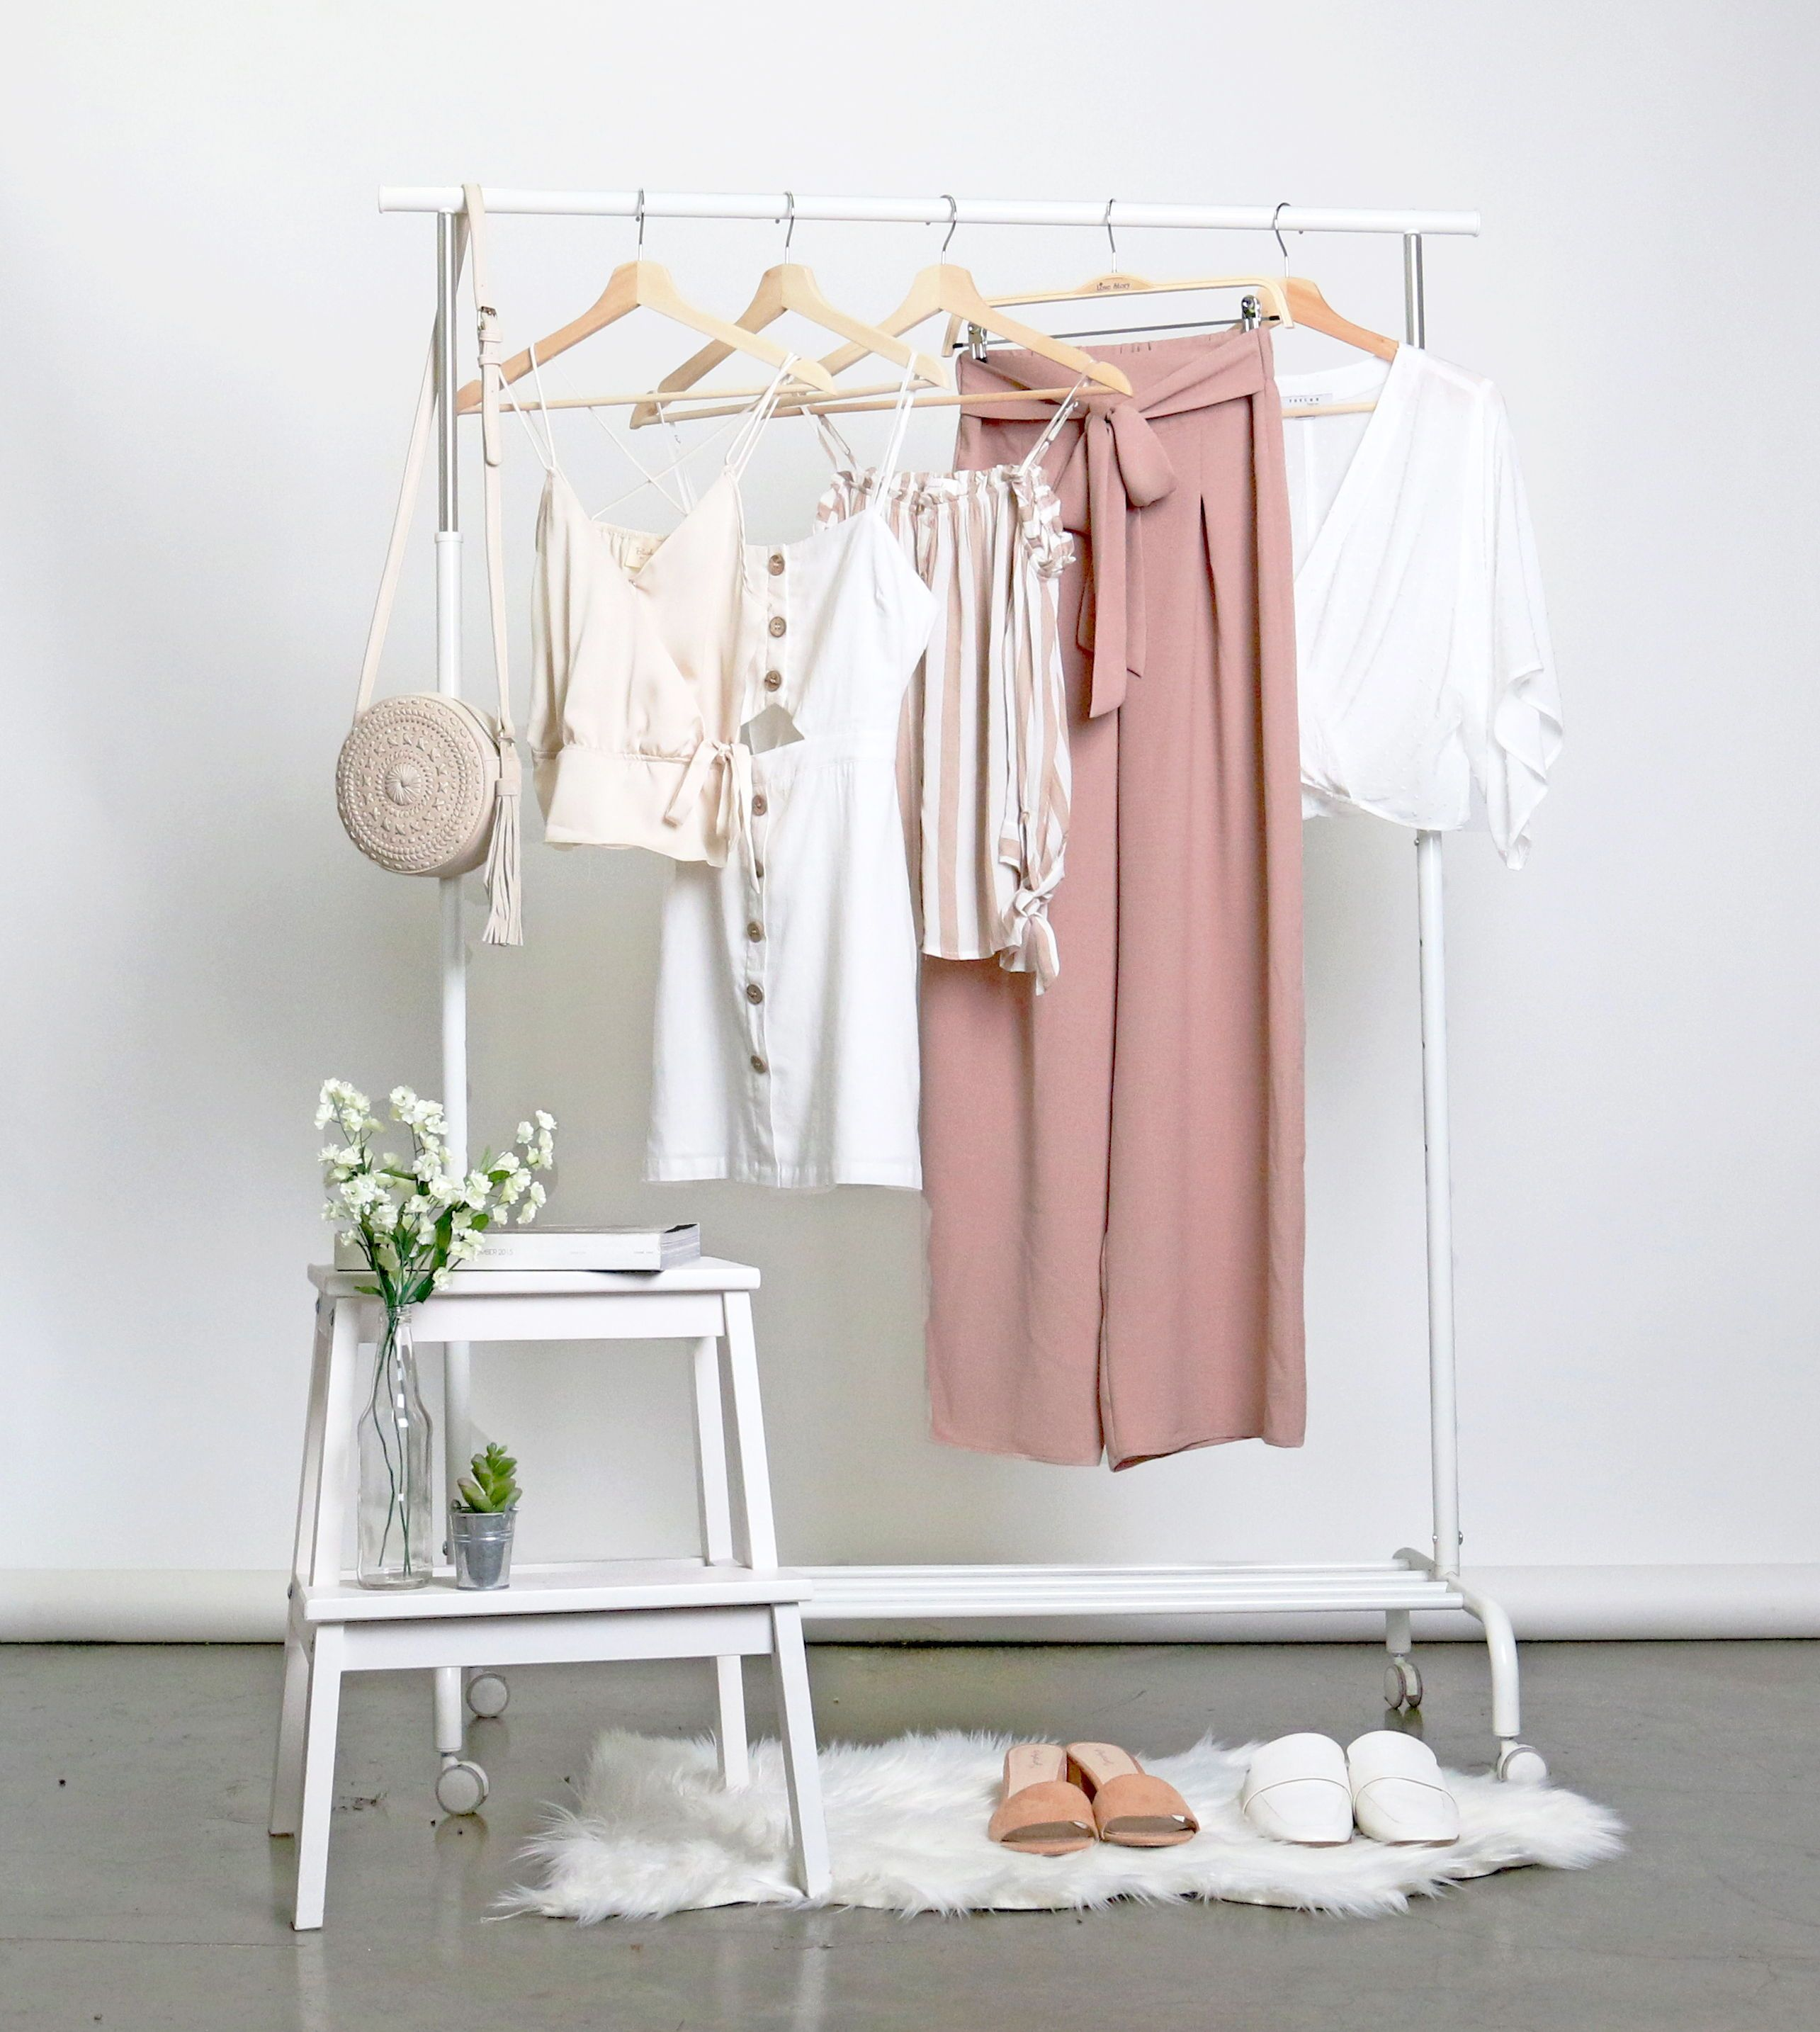 Pin On Neutrals Style Goals